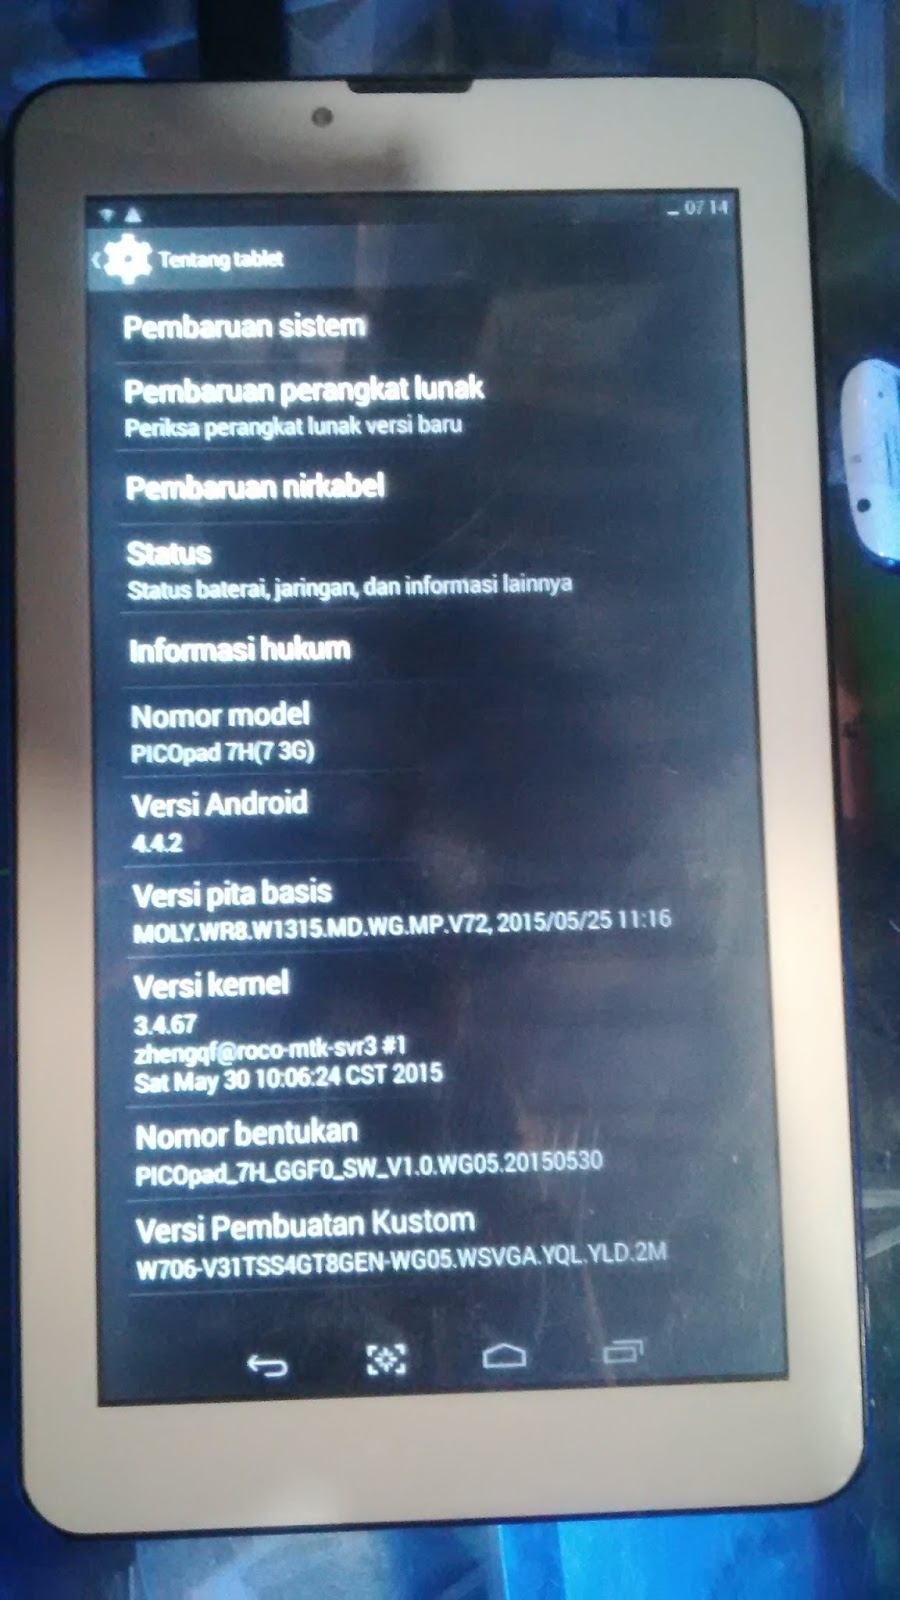 Harga Dan Spek Cyrus Tvpad Slim 3g Wifi Update 2018 Paket Shampo Syoss Oleo Intense 190ml 2 1 Software April 2017 Model Number Picopad 7h7